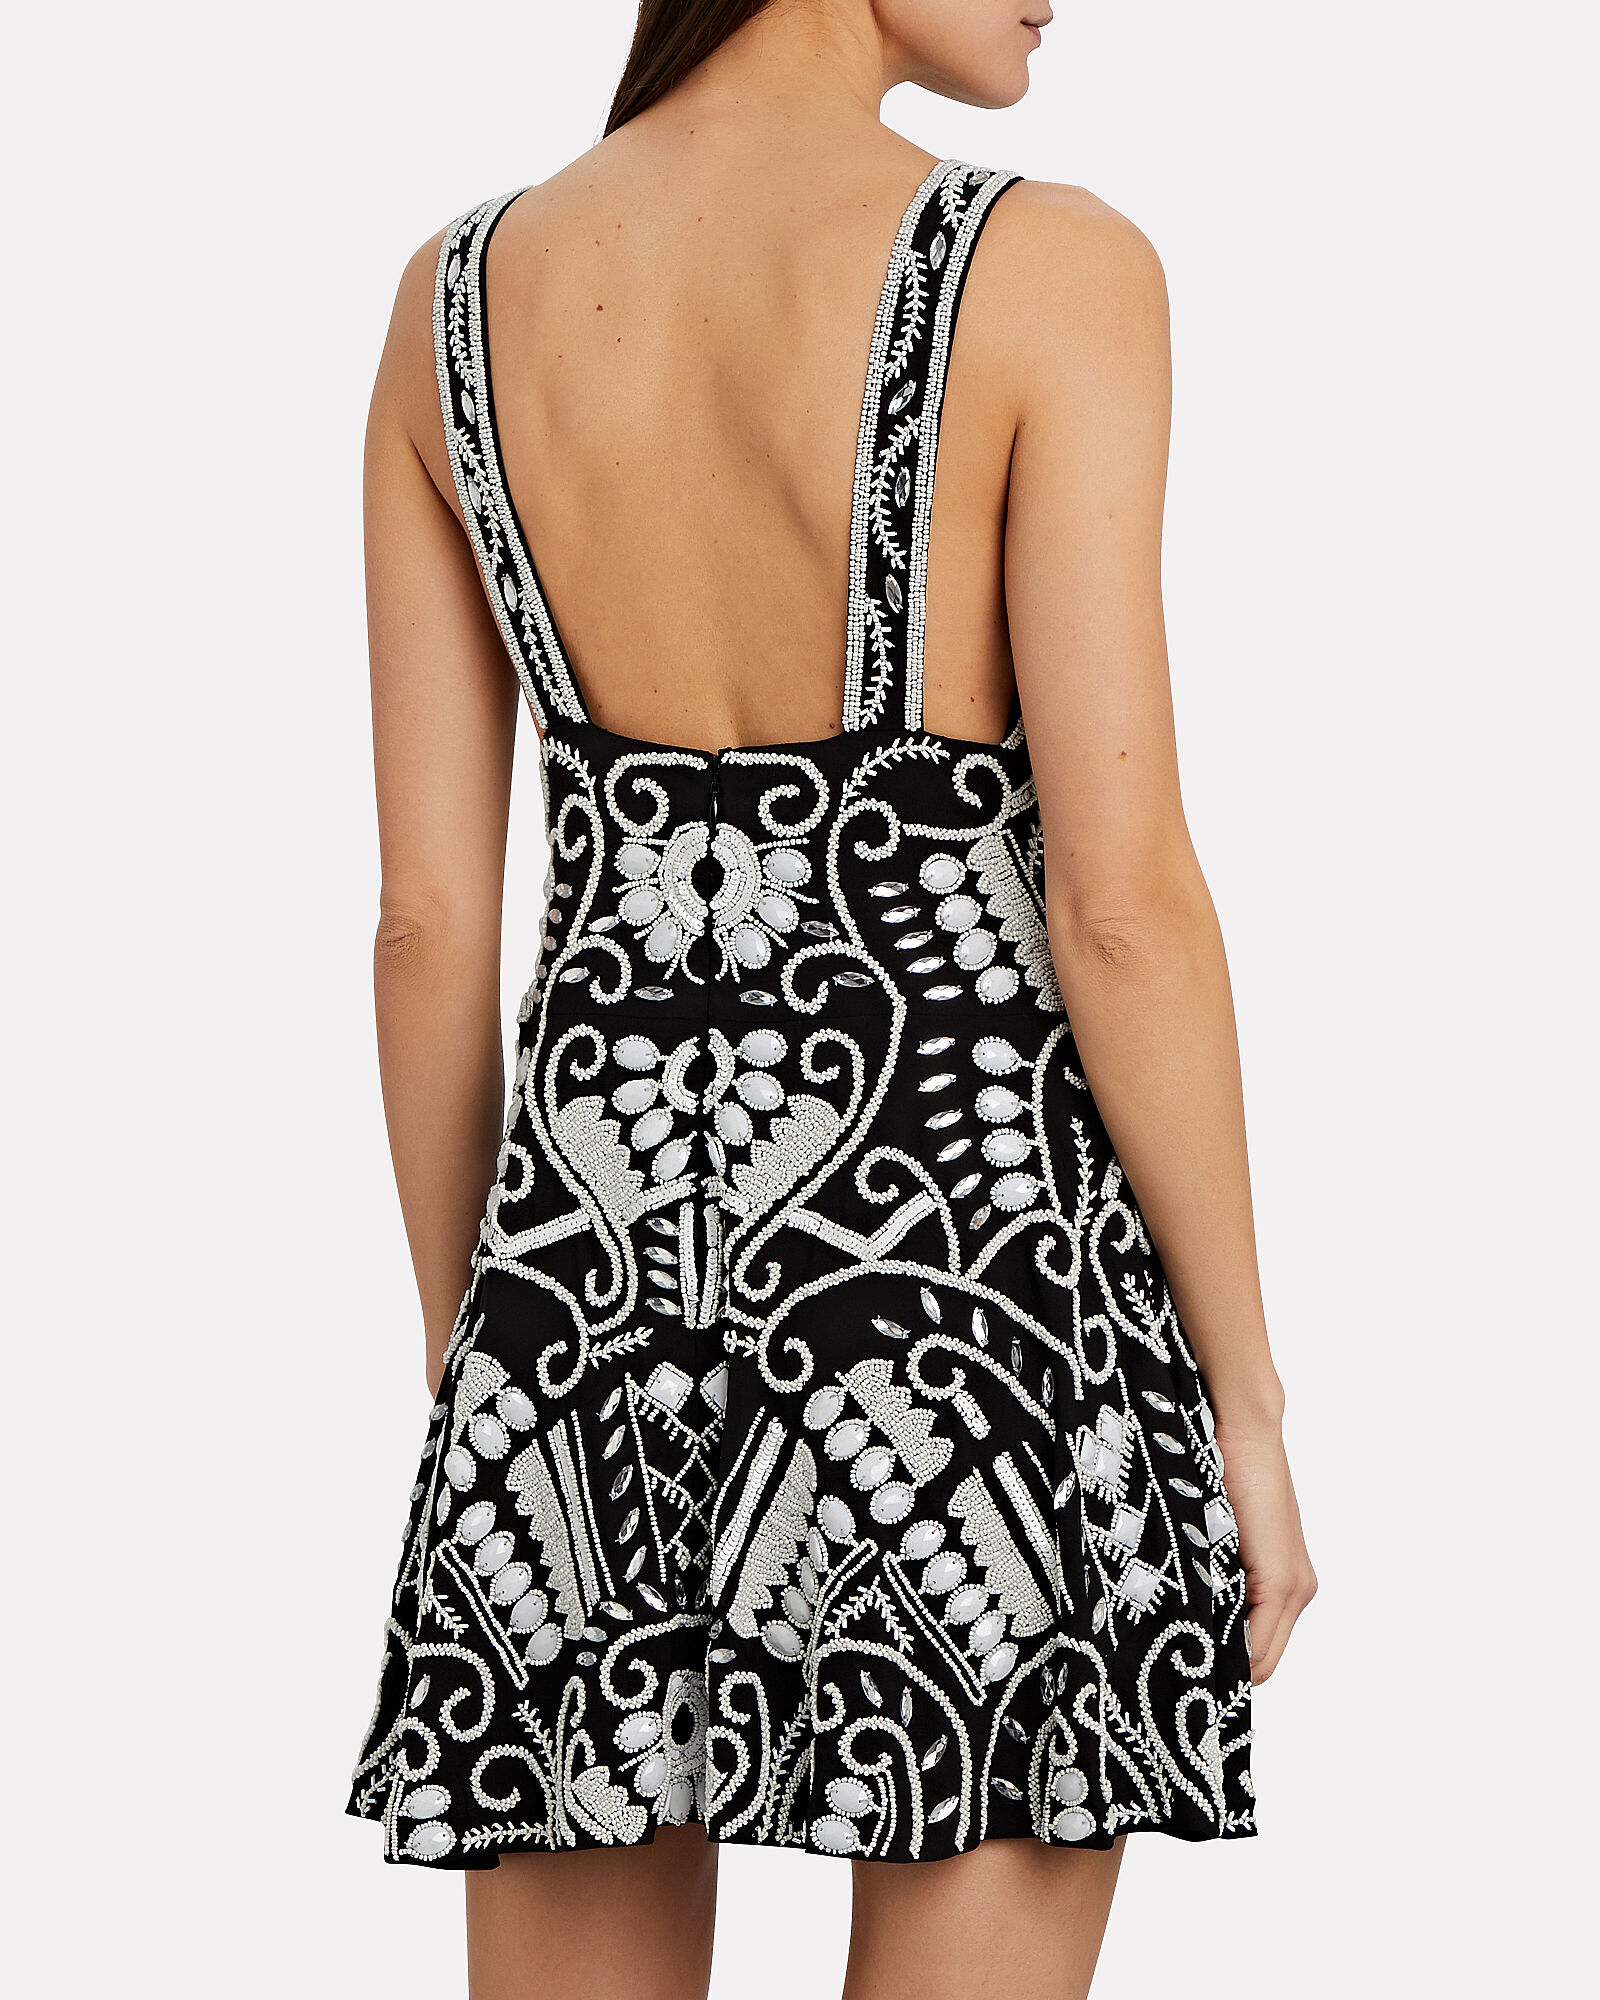 Jerza Beaded Mini Dress, BLK/WHT, hi-res